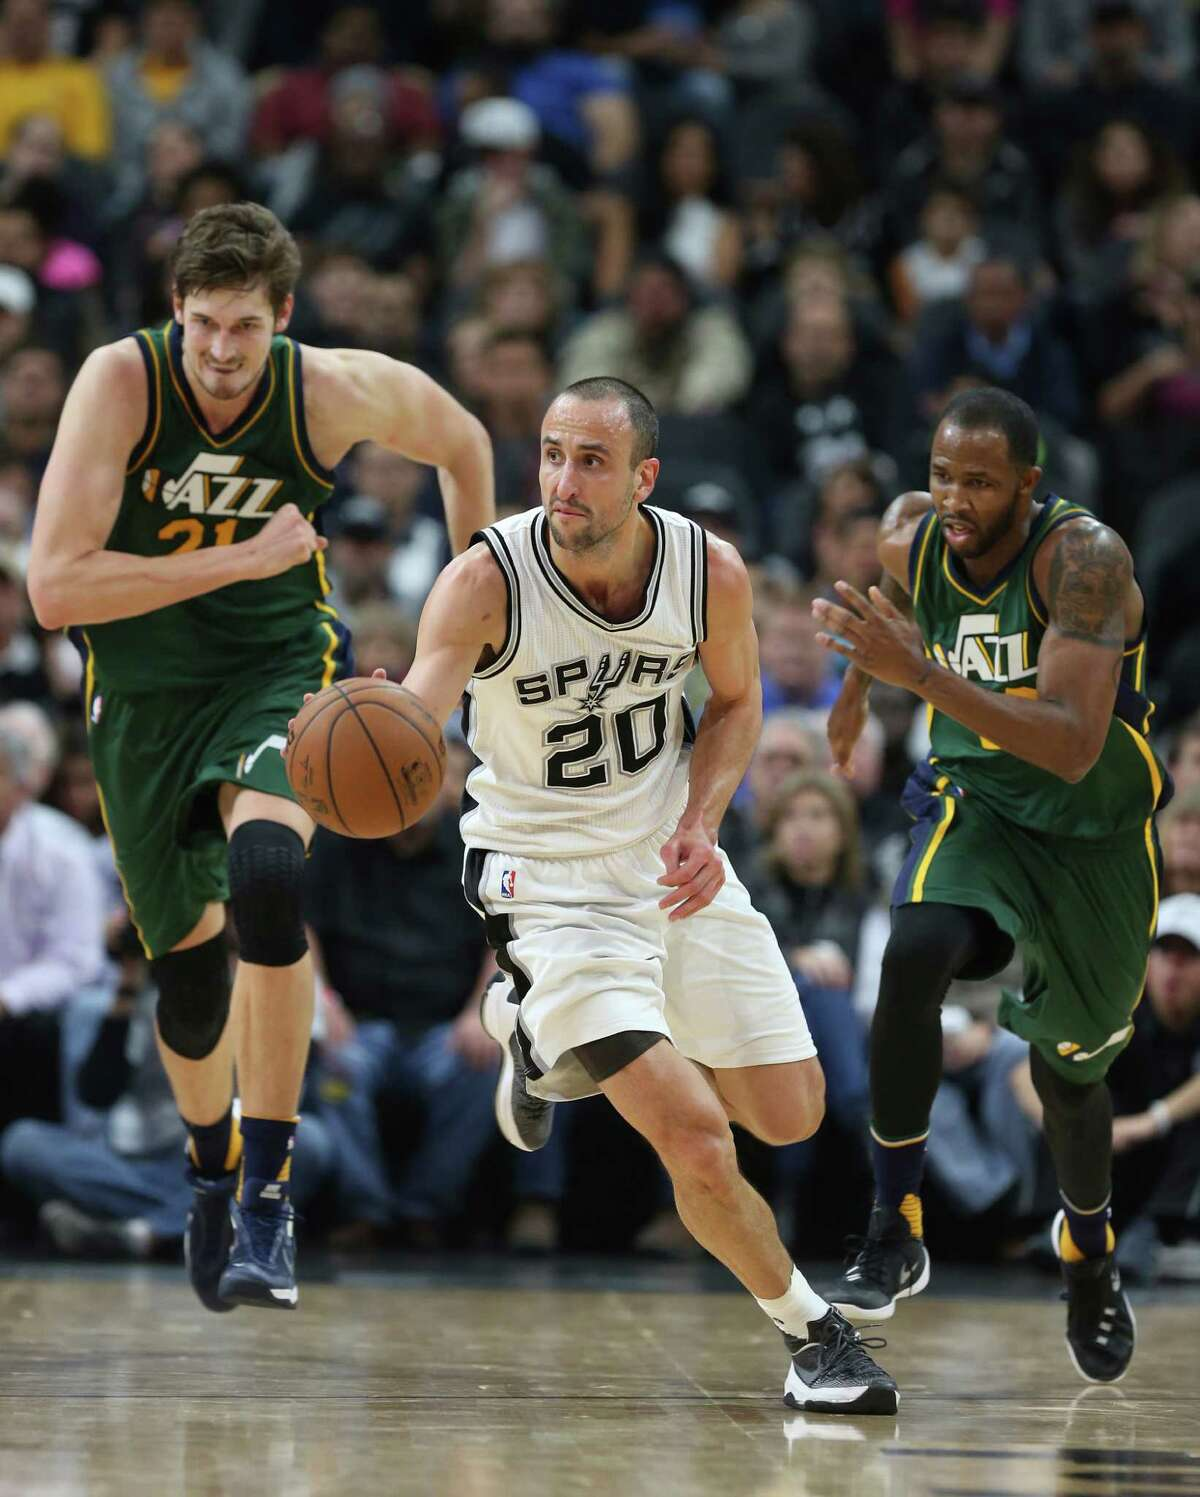 San Antonio Spurs' Manu Ginobili drives the ball as Utah Jazz' Tibor Pleiss, left, and Chris Johnson try to catch up during the second half at the AT&T Center, Wednesday, Jan. 6, 2016. The Spurs won, 123-98.